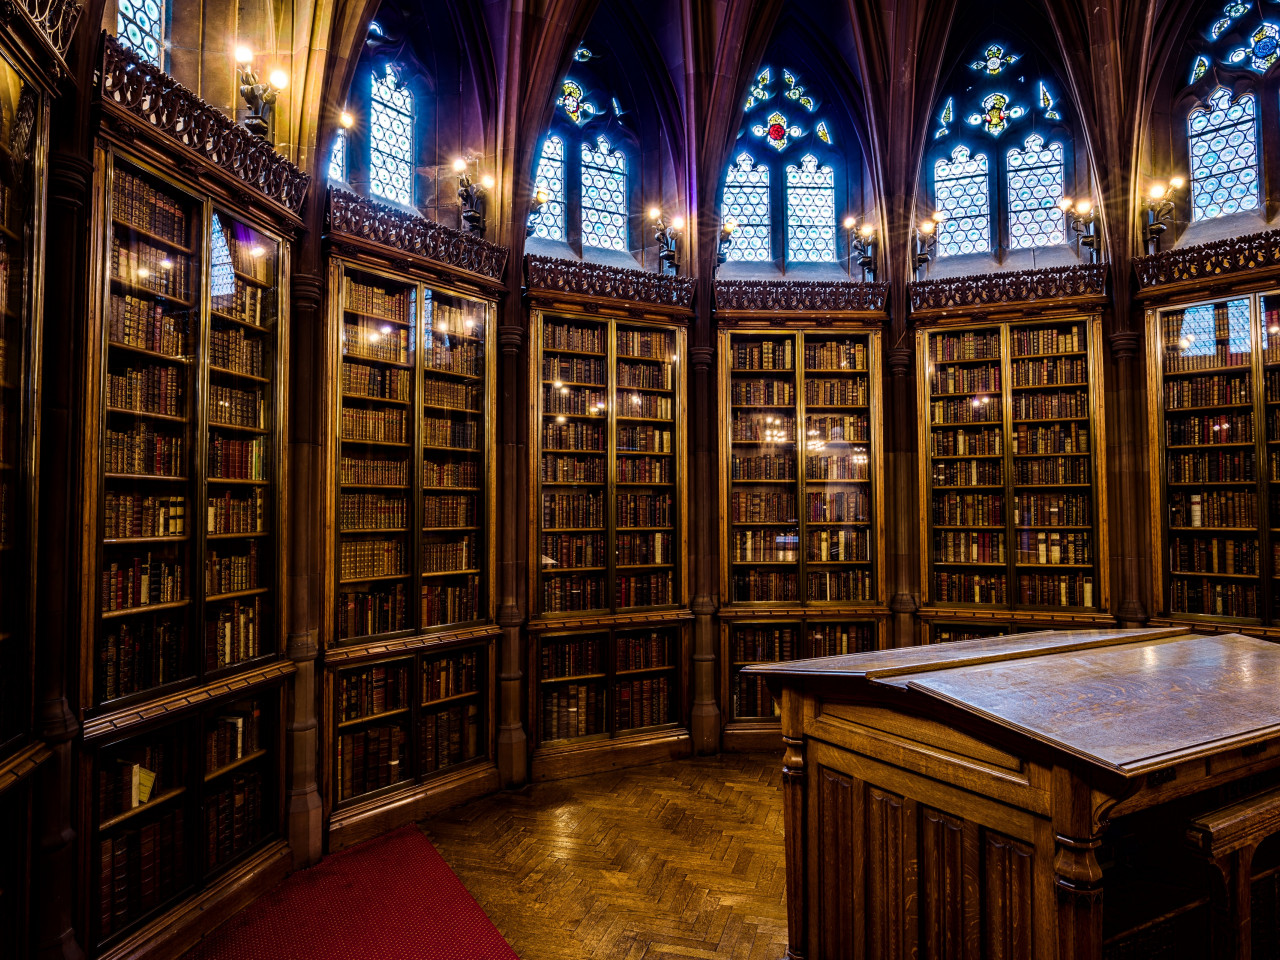 The Interior of John Rylands library wallpaper 1280x960